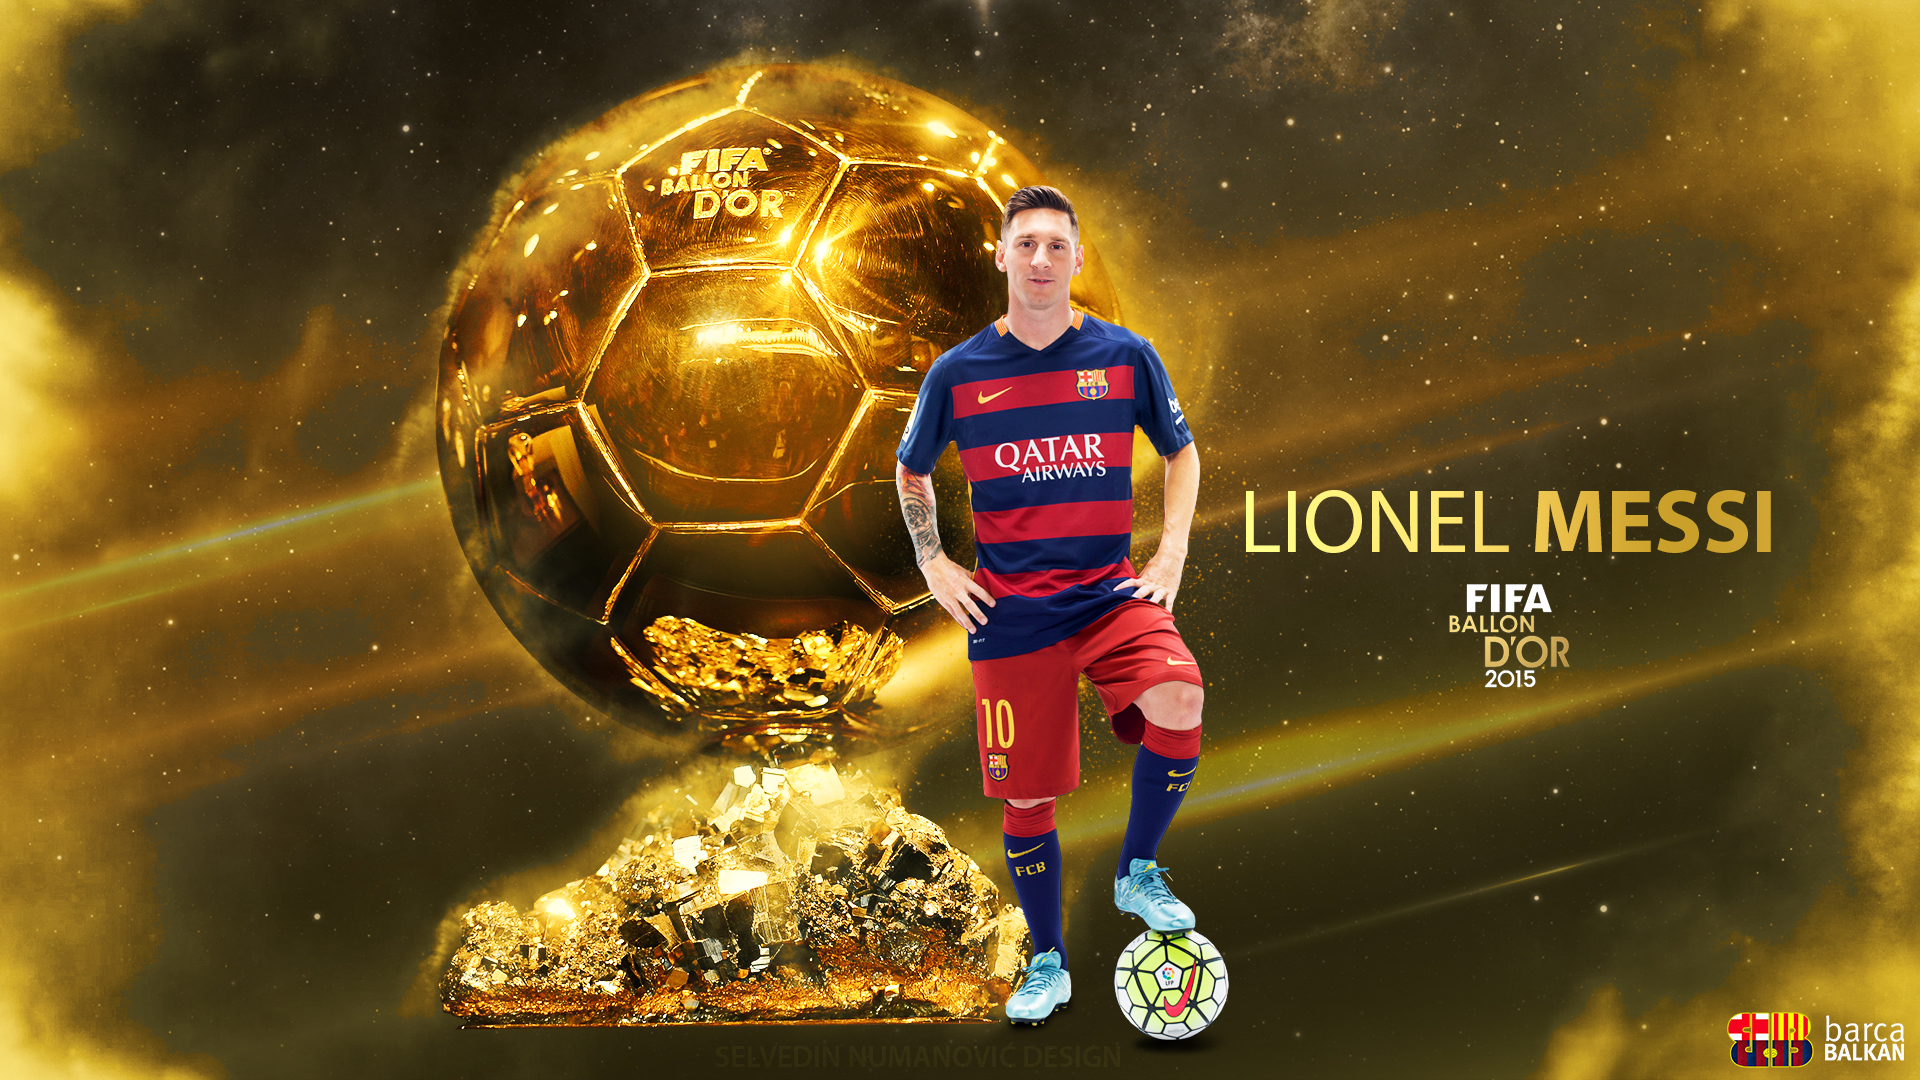 Lionel Messi 2016 - Bing images